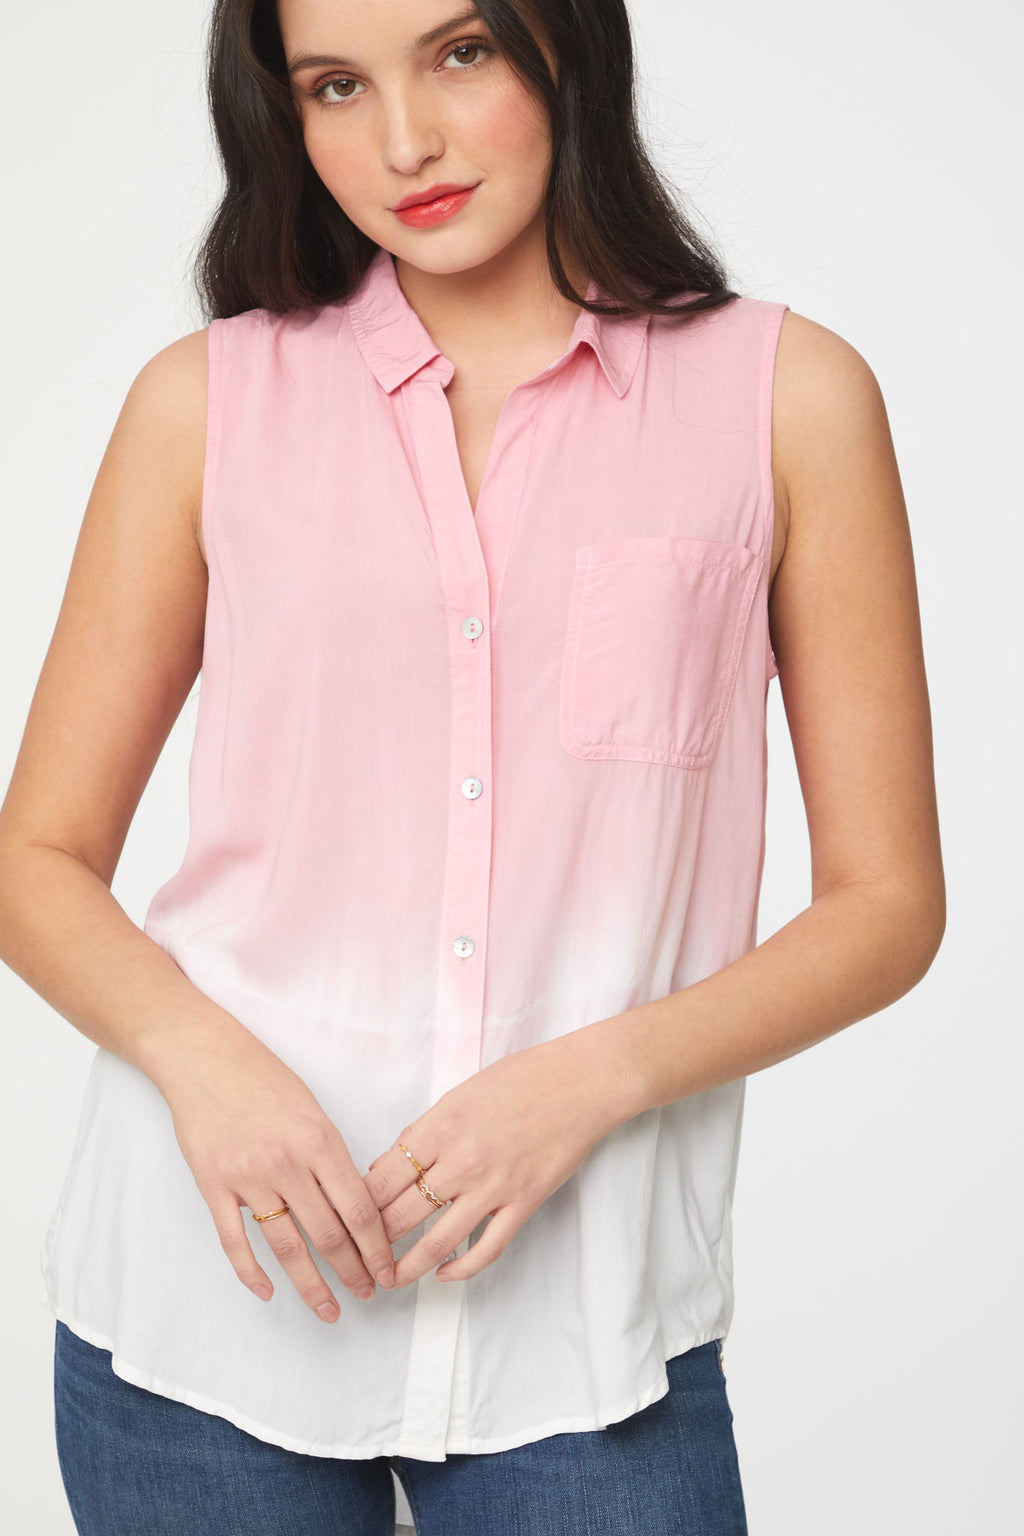 Close up of pink and white dip dye sleeveless blouse by Beachlunchlounge